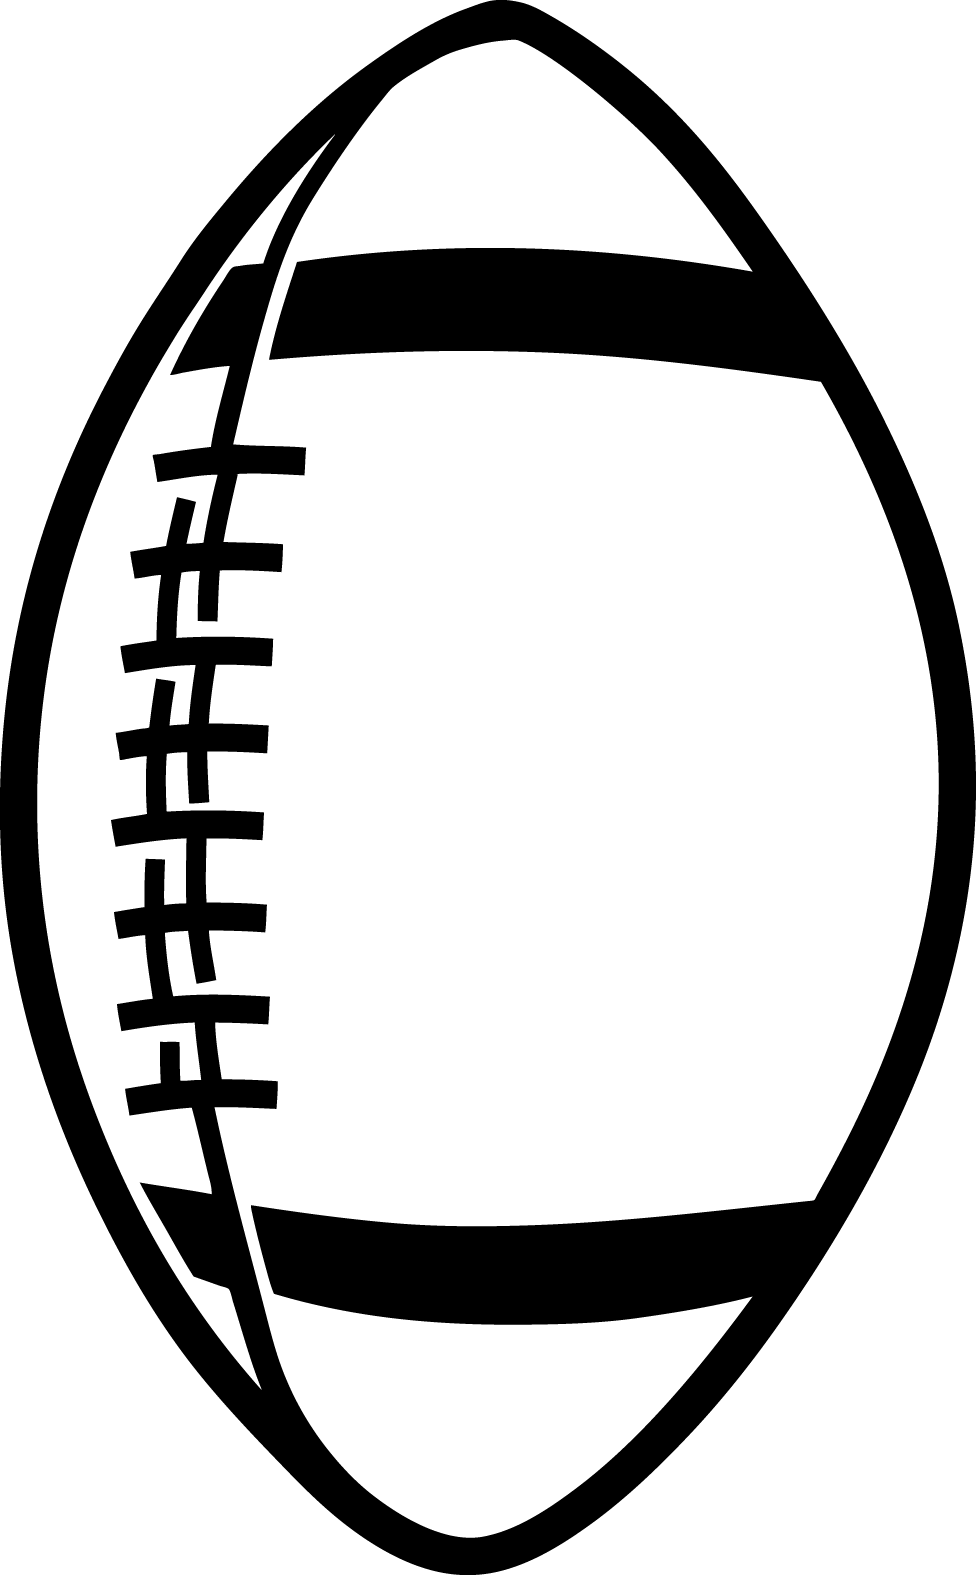 Football clipart with words vector royalty free library Success!? Copyright Law B Crazy - EDM310 Completions - Literate ... vector royalty free library